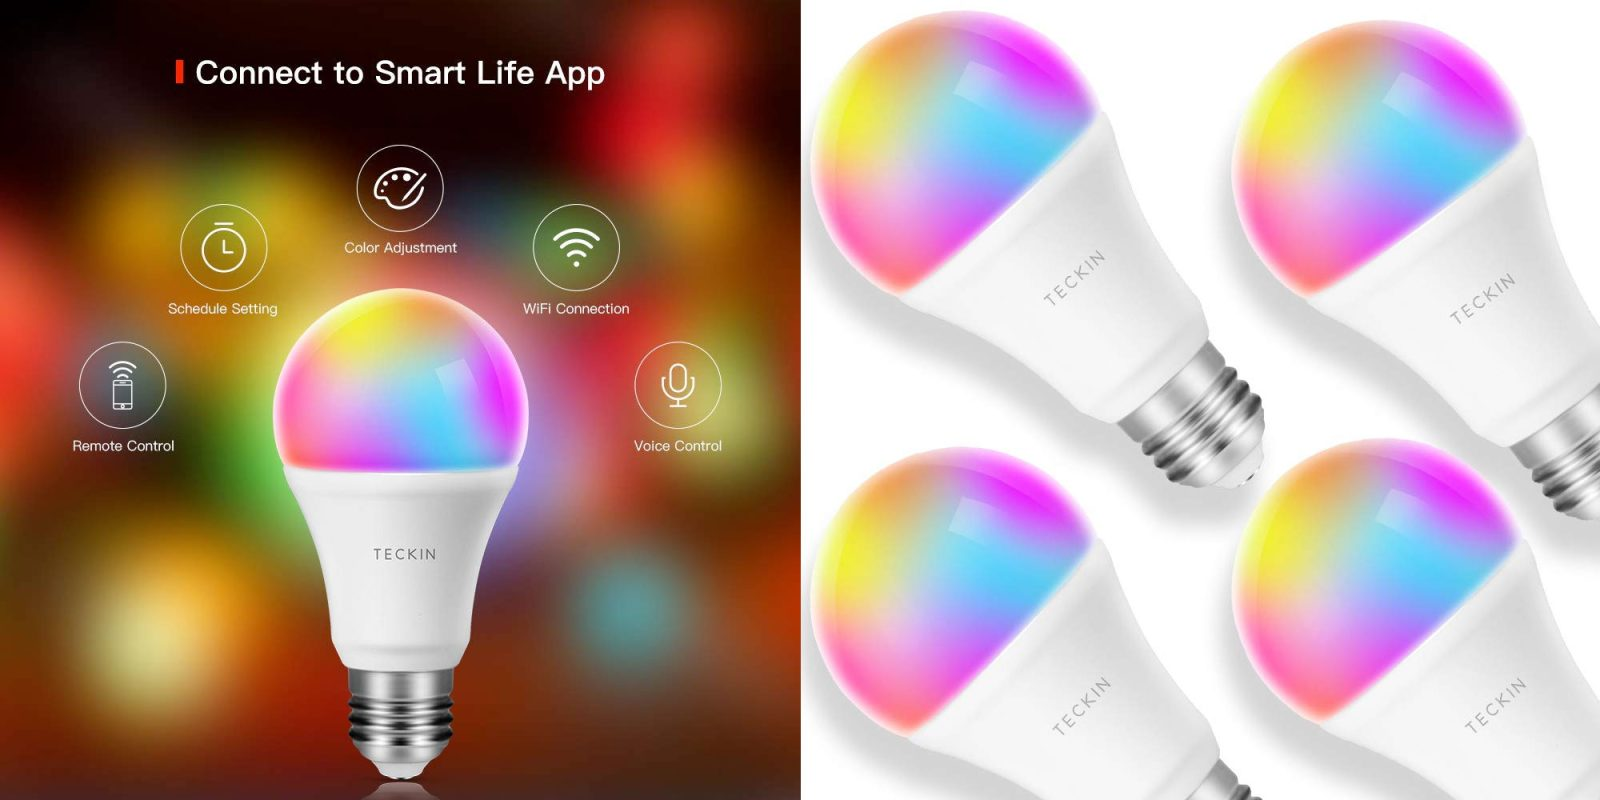 Start your RGB journey w/ this 4-pack of smart bulbs for